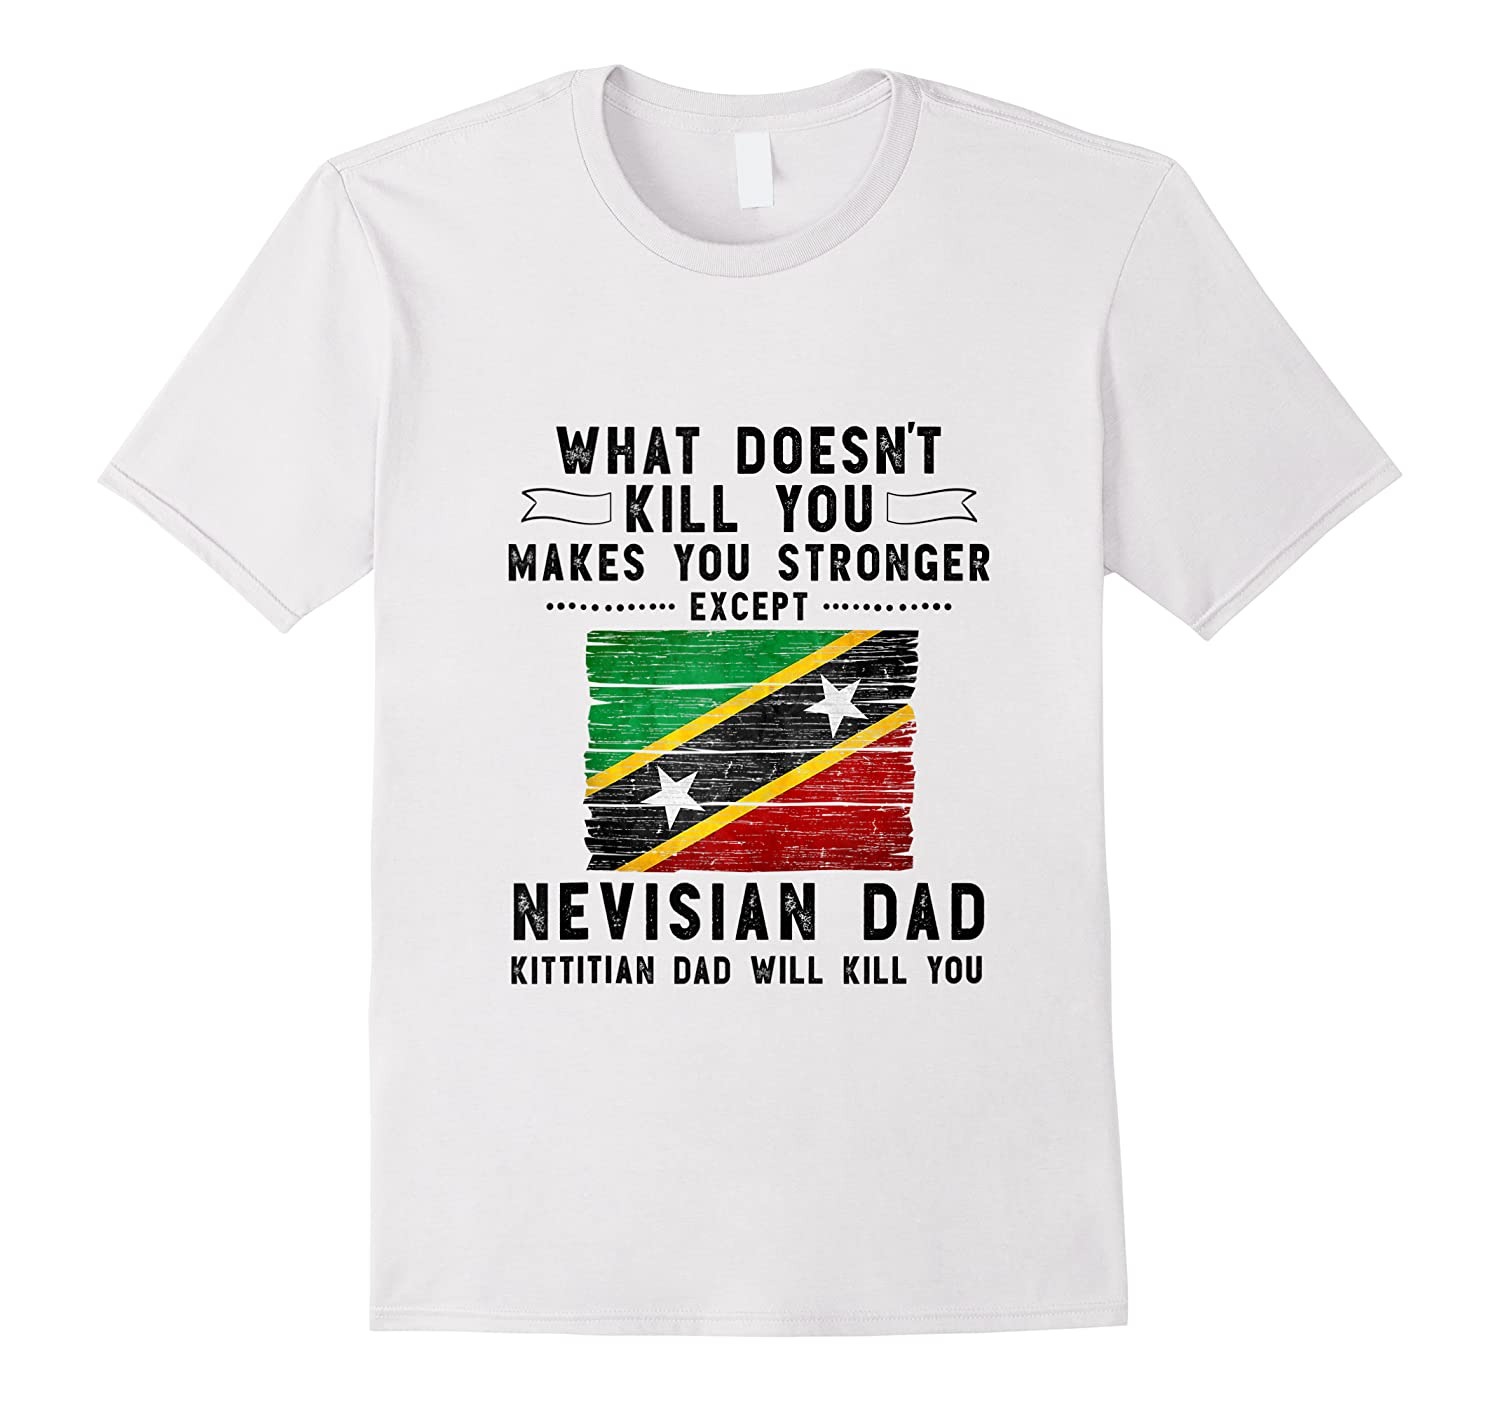 Saint Kitts Nevis Dad Gifts For Fathers Day Tank Top Shirts